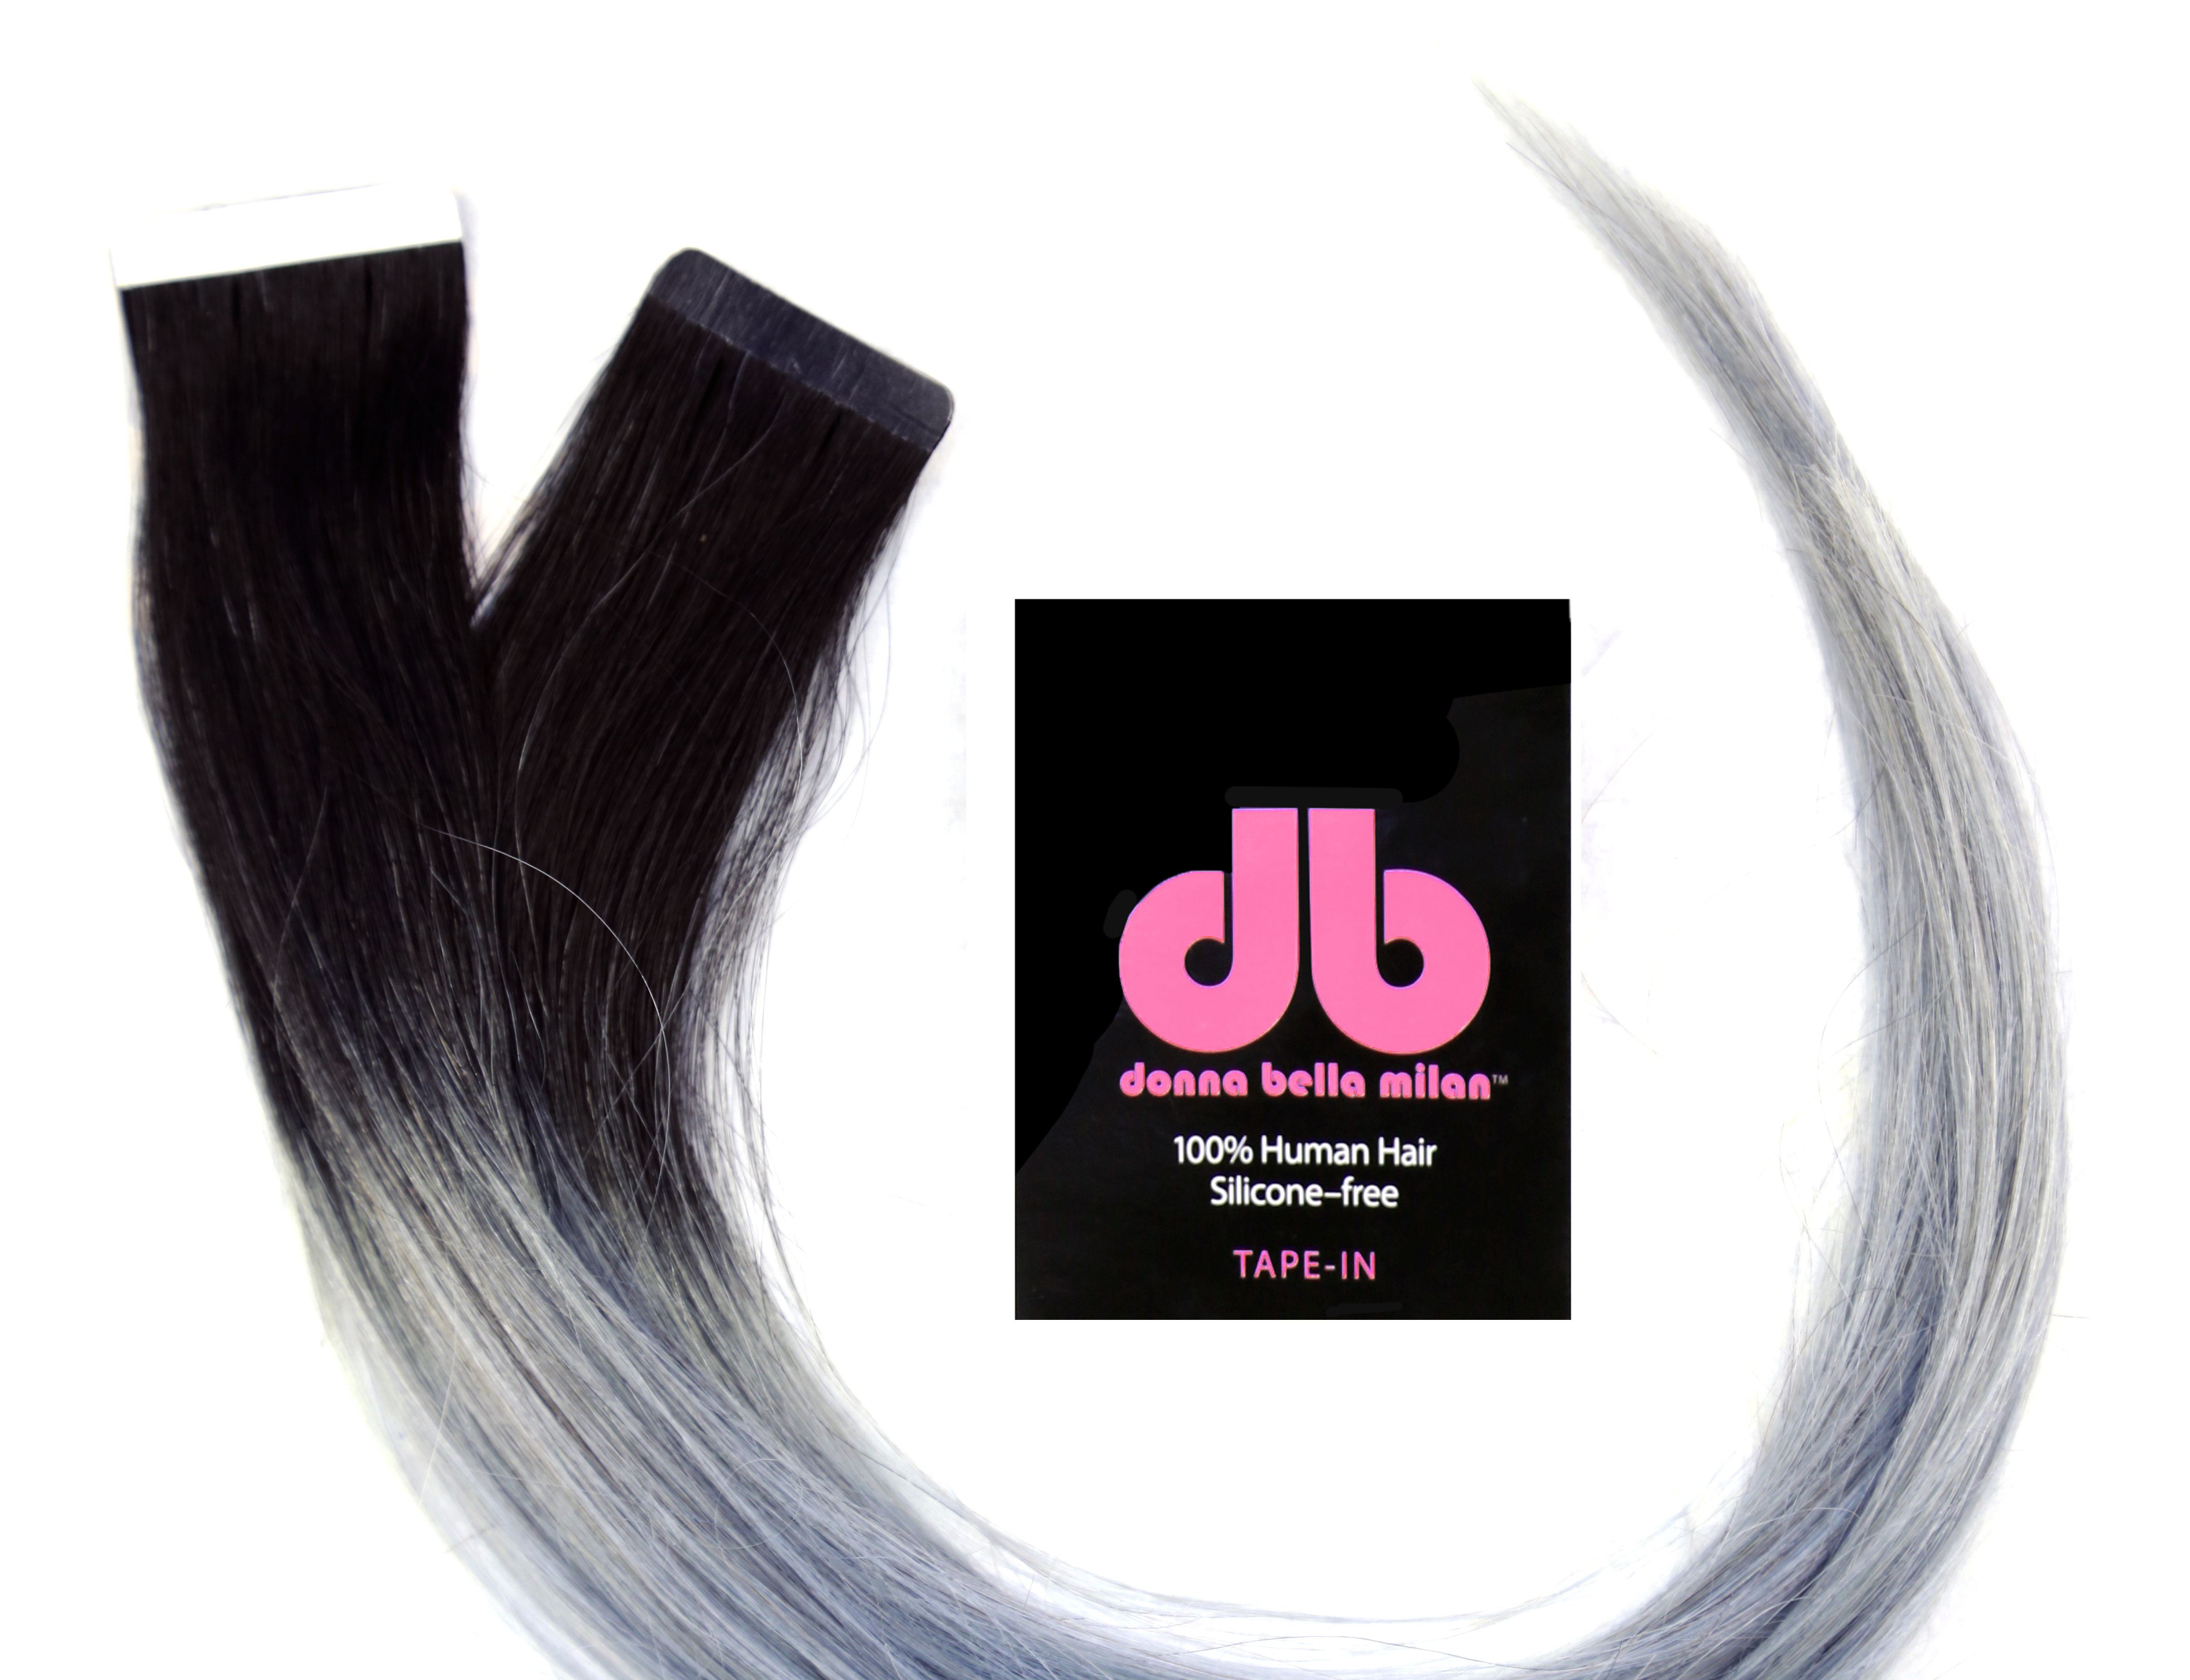 Donna bella silver hair extensions honest review pmusecretfo Image collections